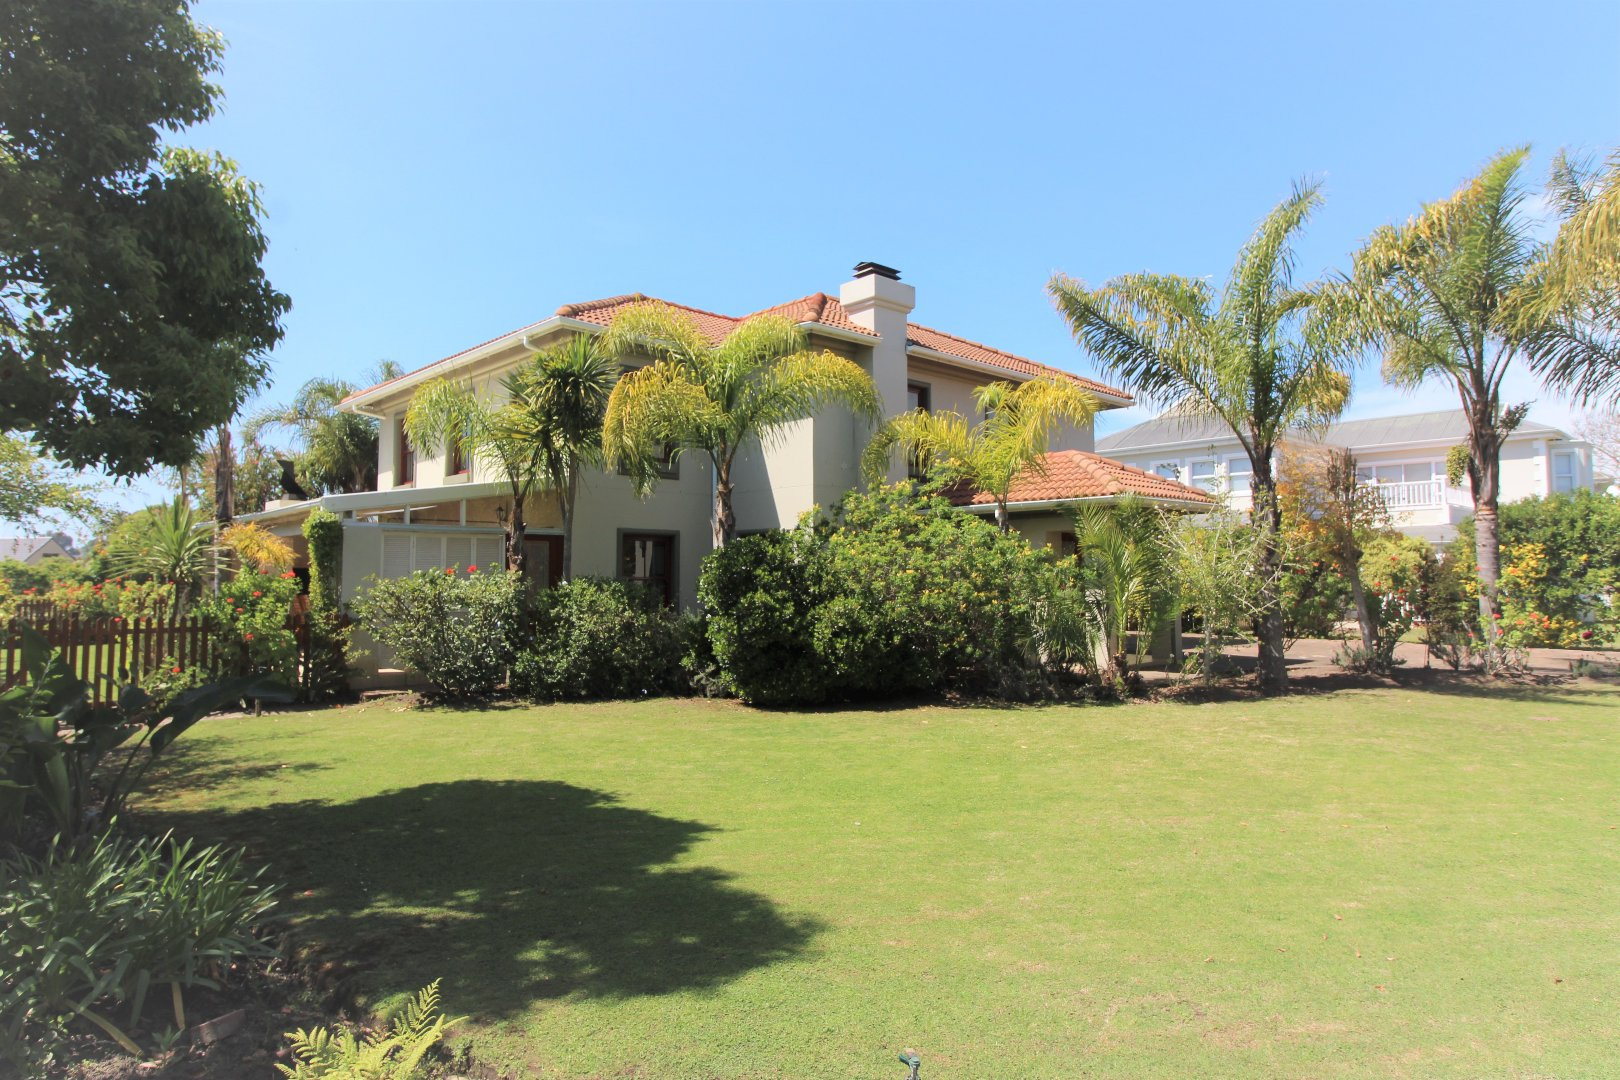 Property for Sale by DLC INC. ATTORNEYS Dale Hobbs, House, 6 Bedrooms - ZAR 6,895,000